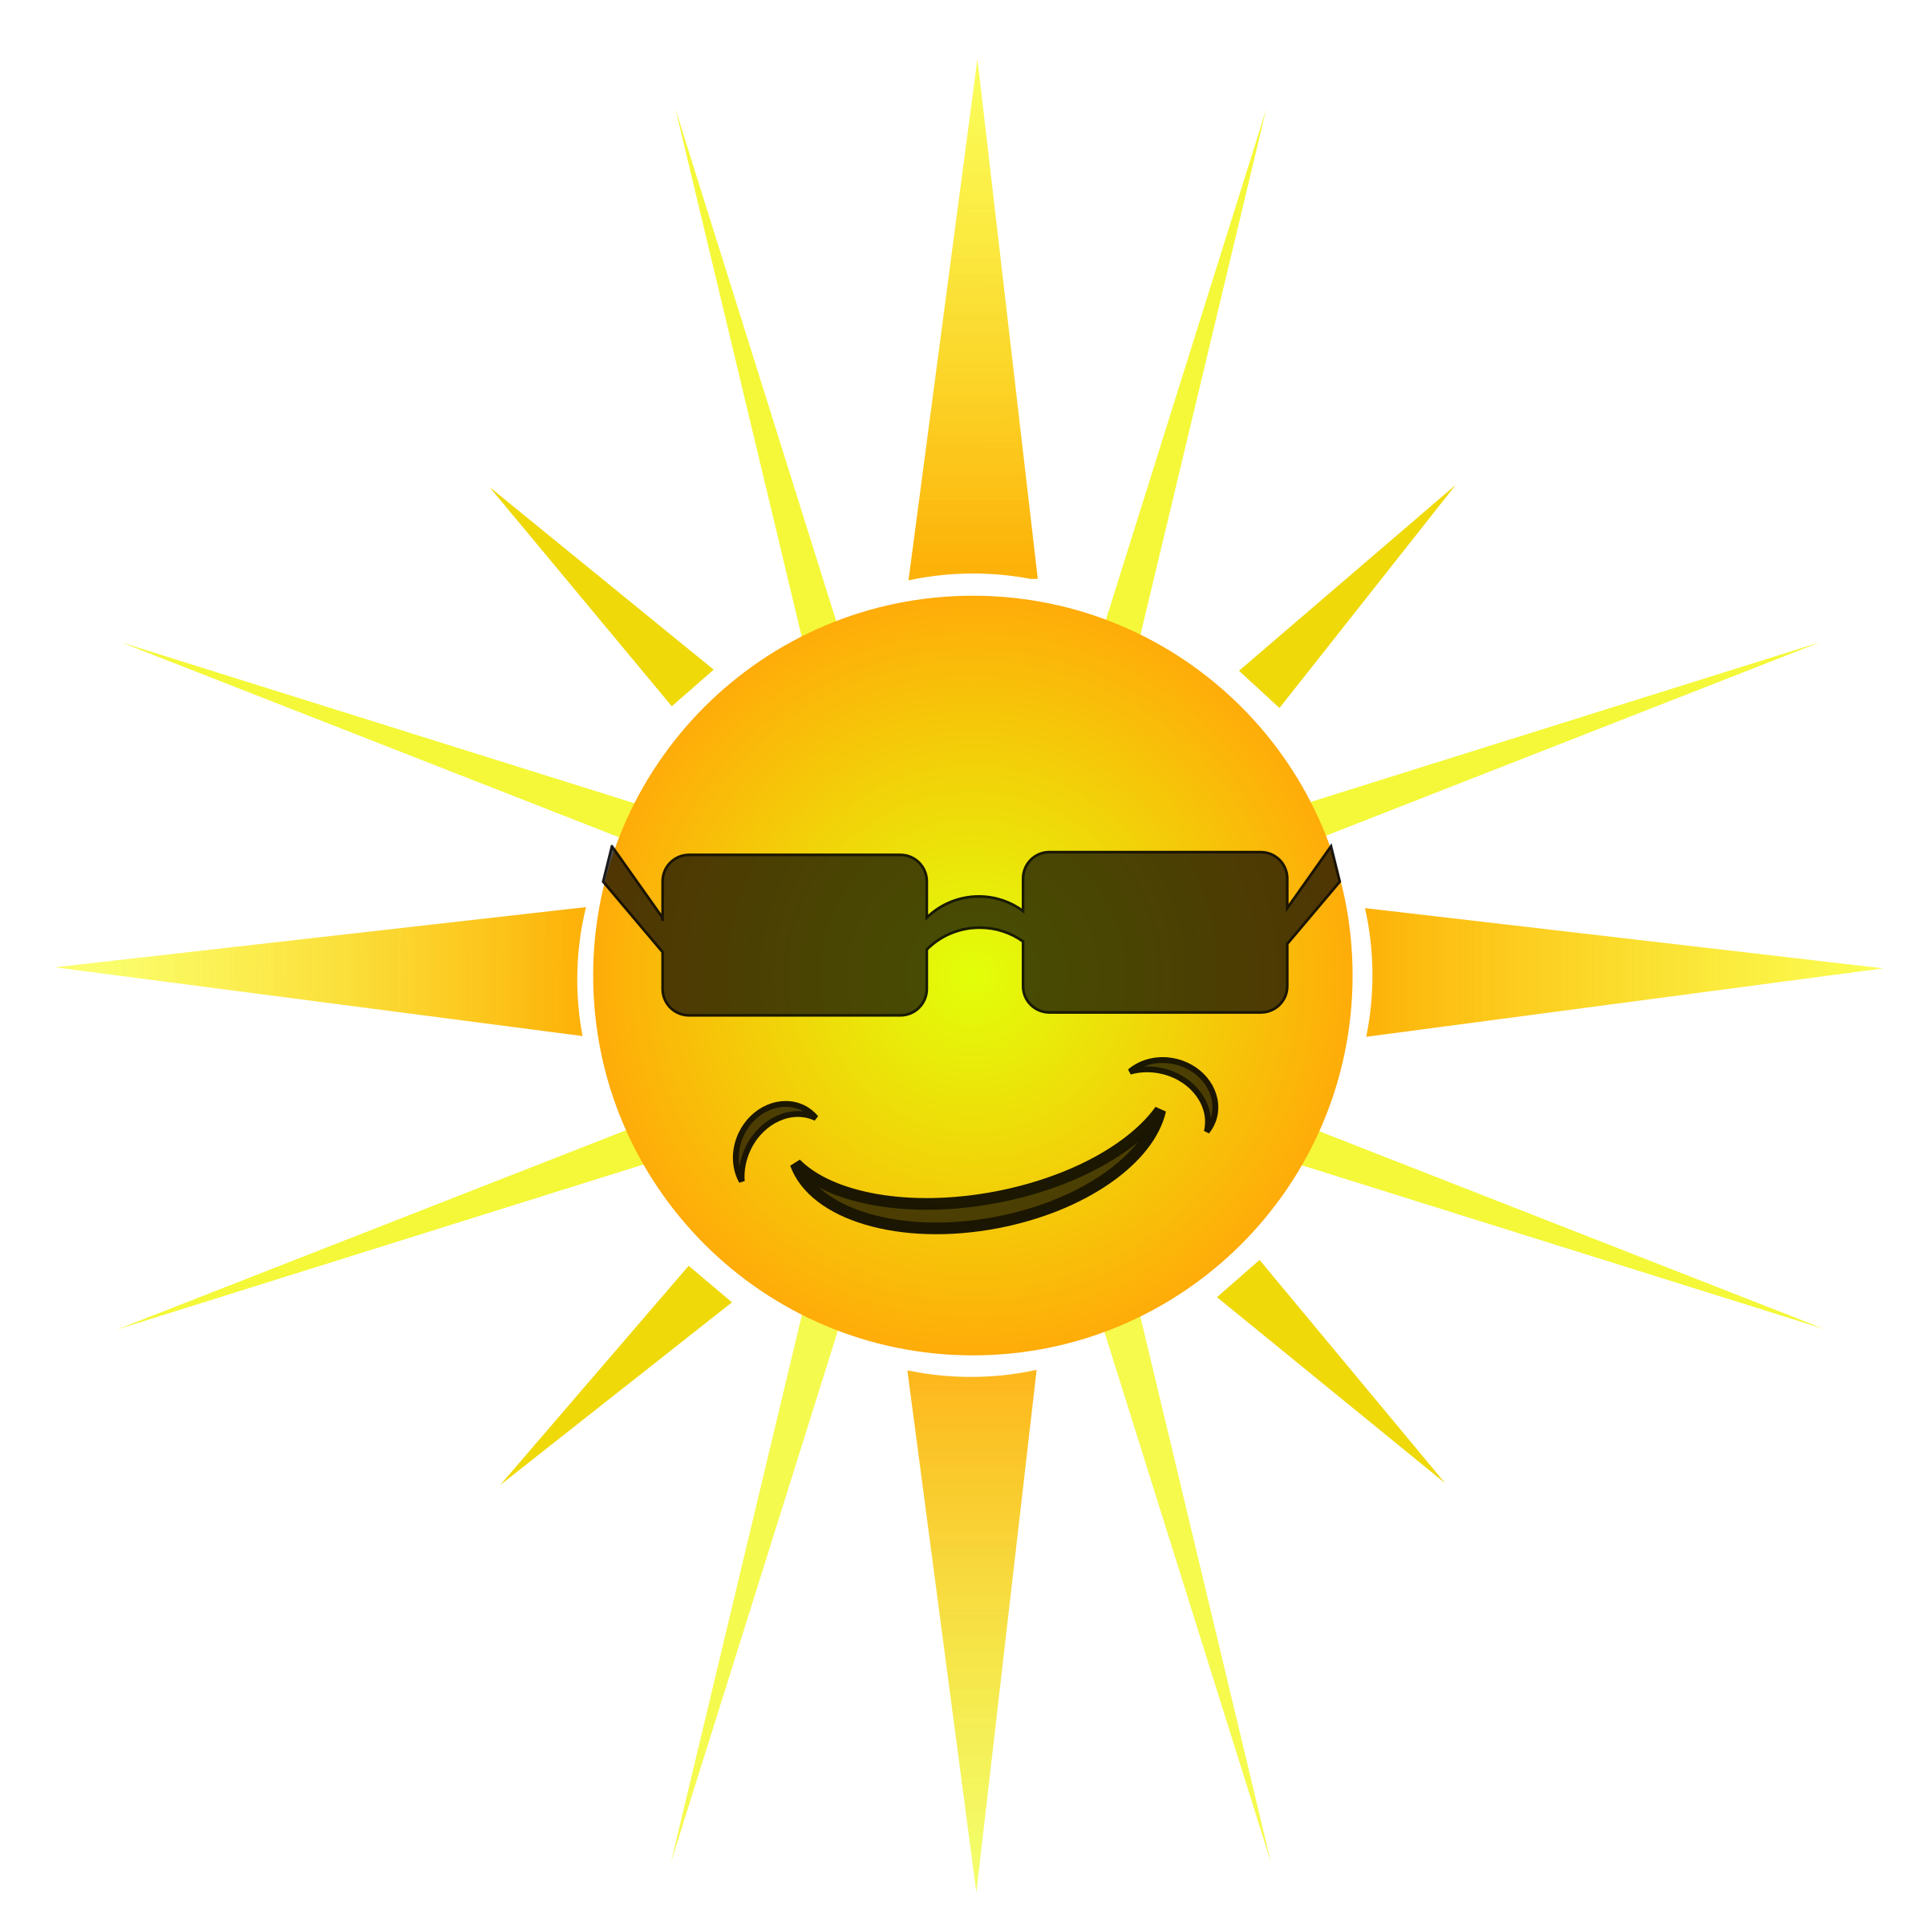 Sun and sunglasses clipart clipart black and white stock Clipart - Cool Happy Sun clipart black and white stock